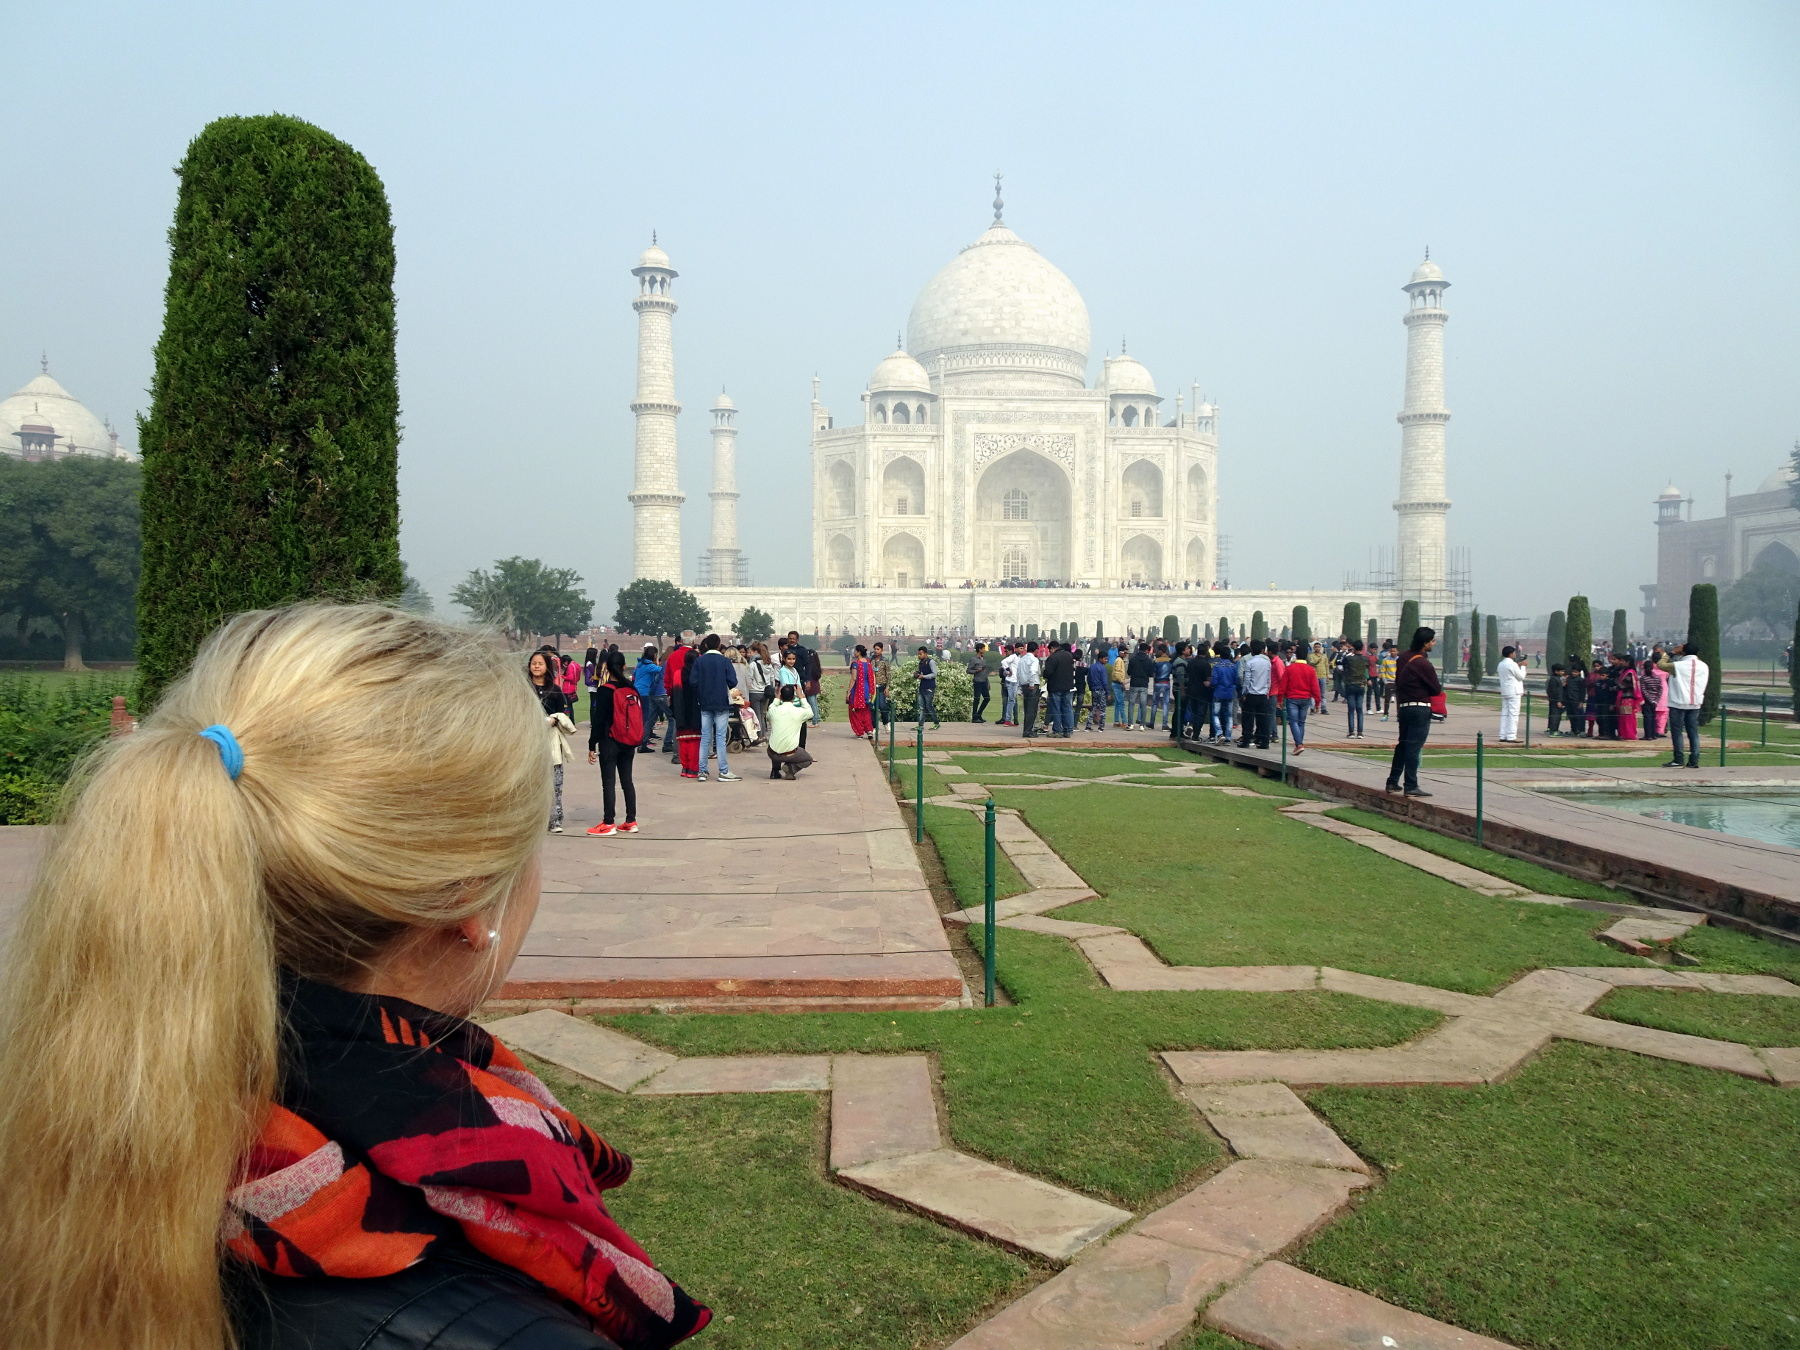 taj mahal in agra applethree personal blog about food travel life. Black Bedroom Furniture Sets. Home Design Ideas